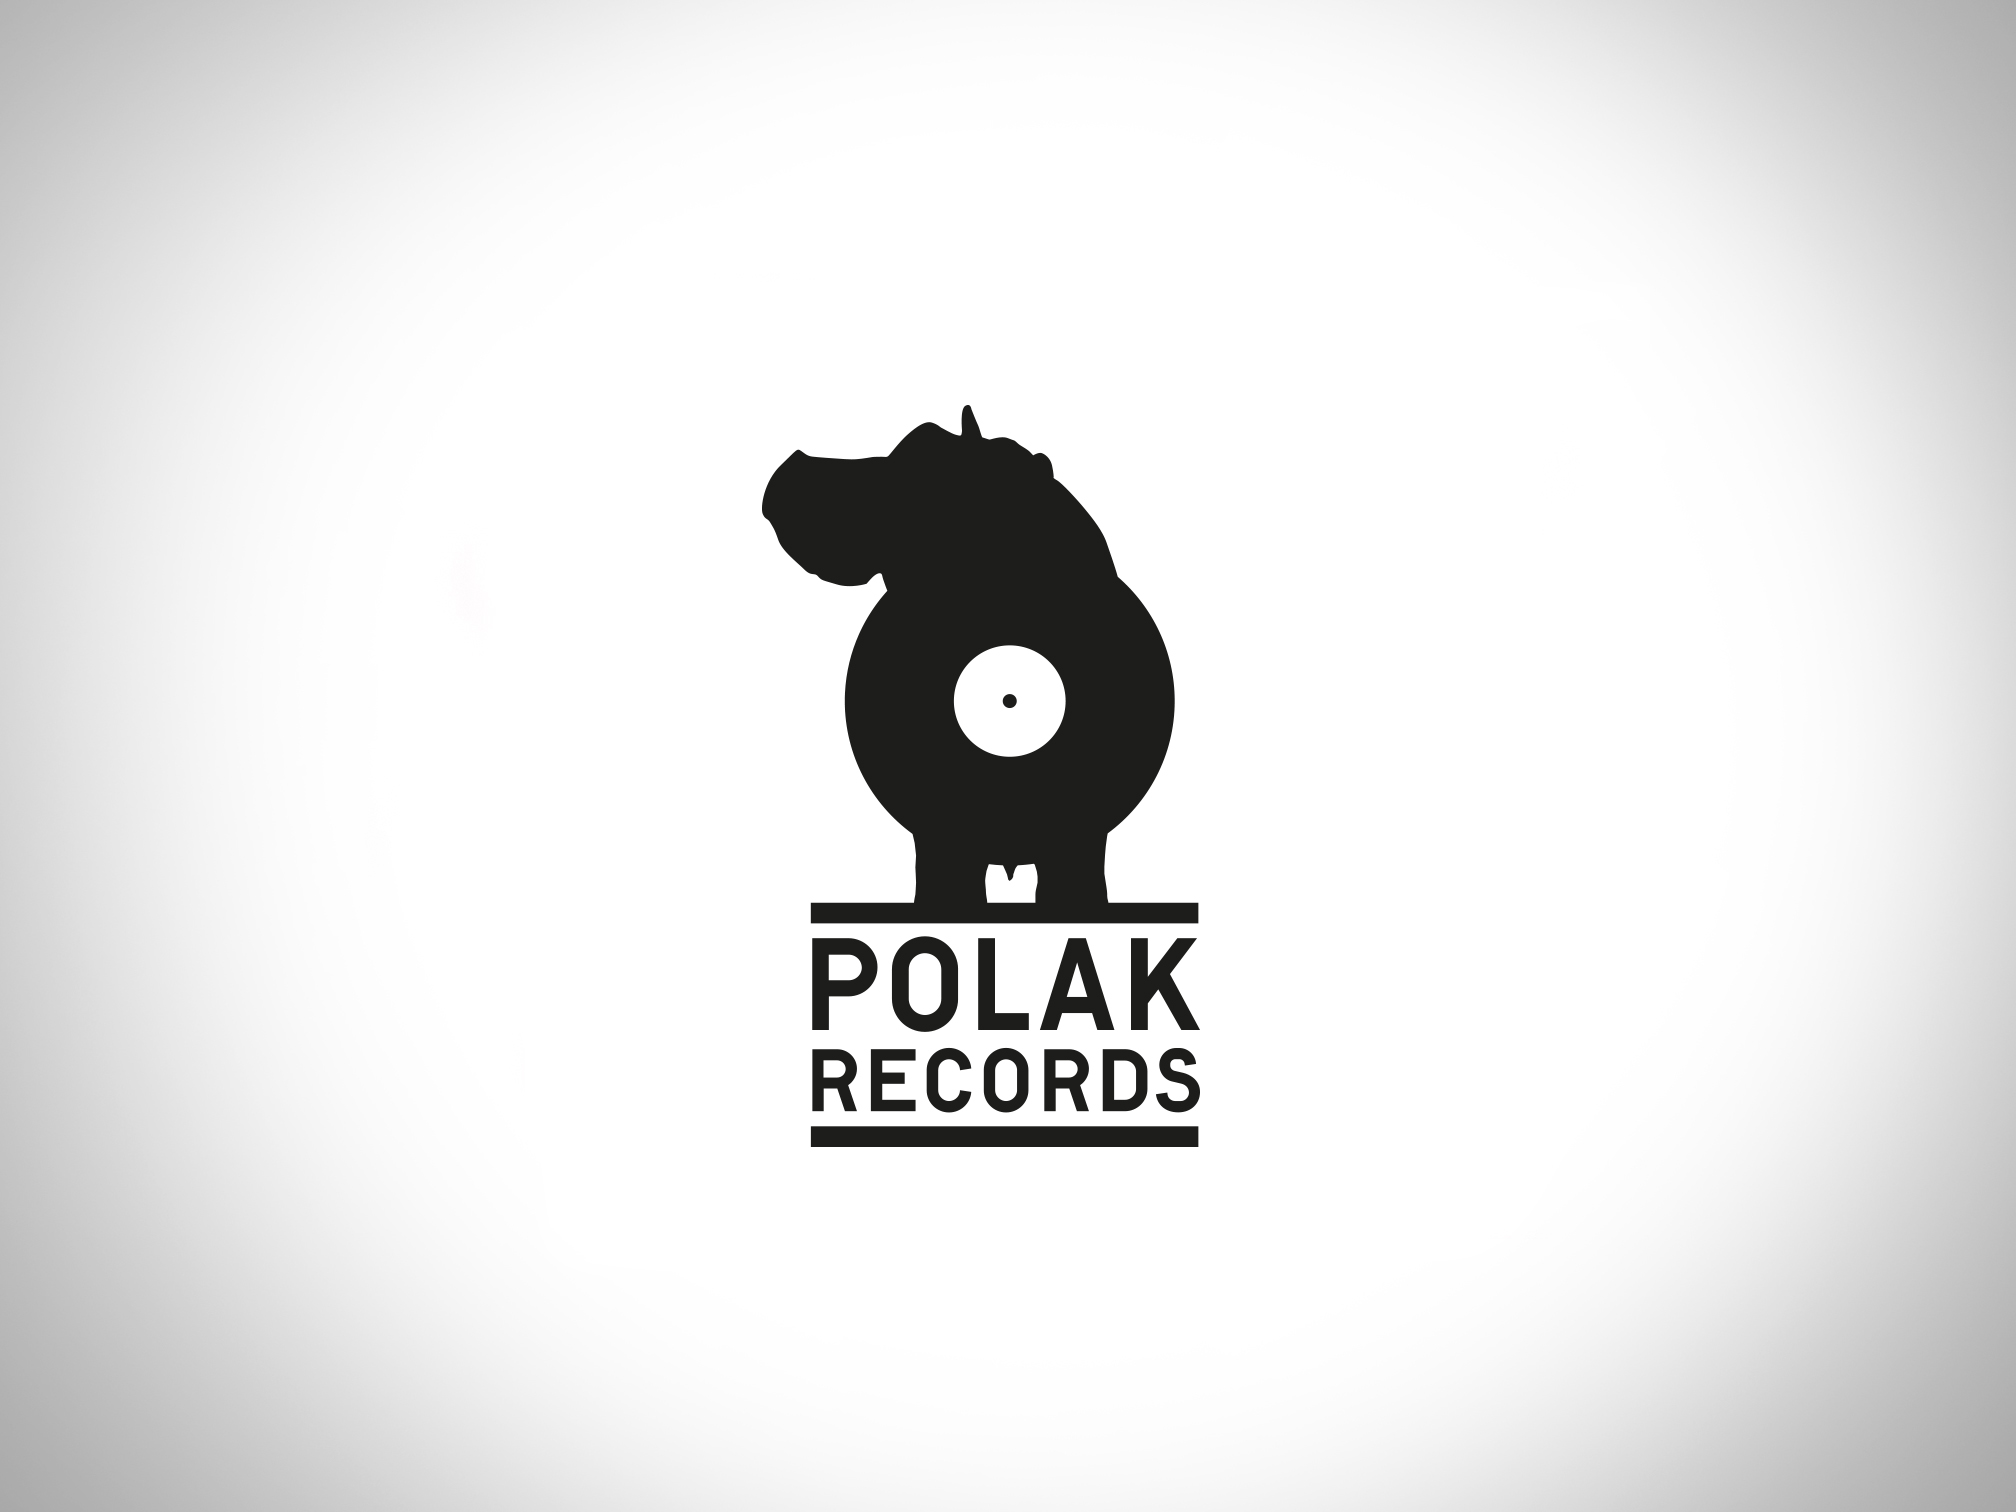 Polak Records